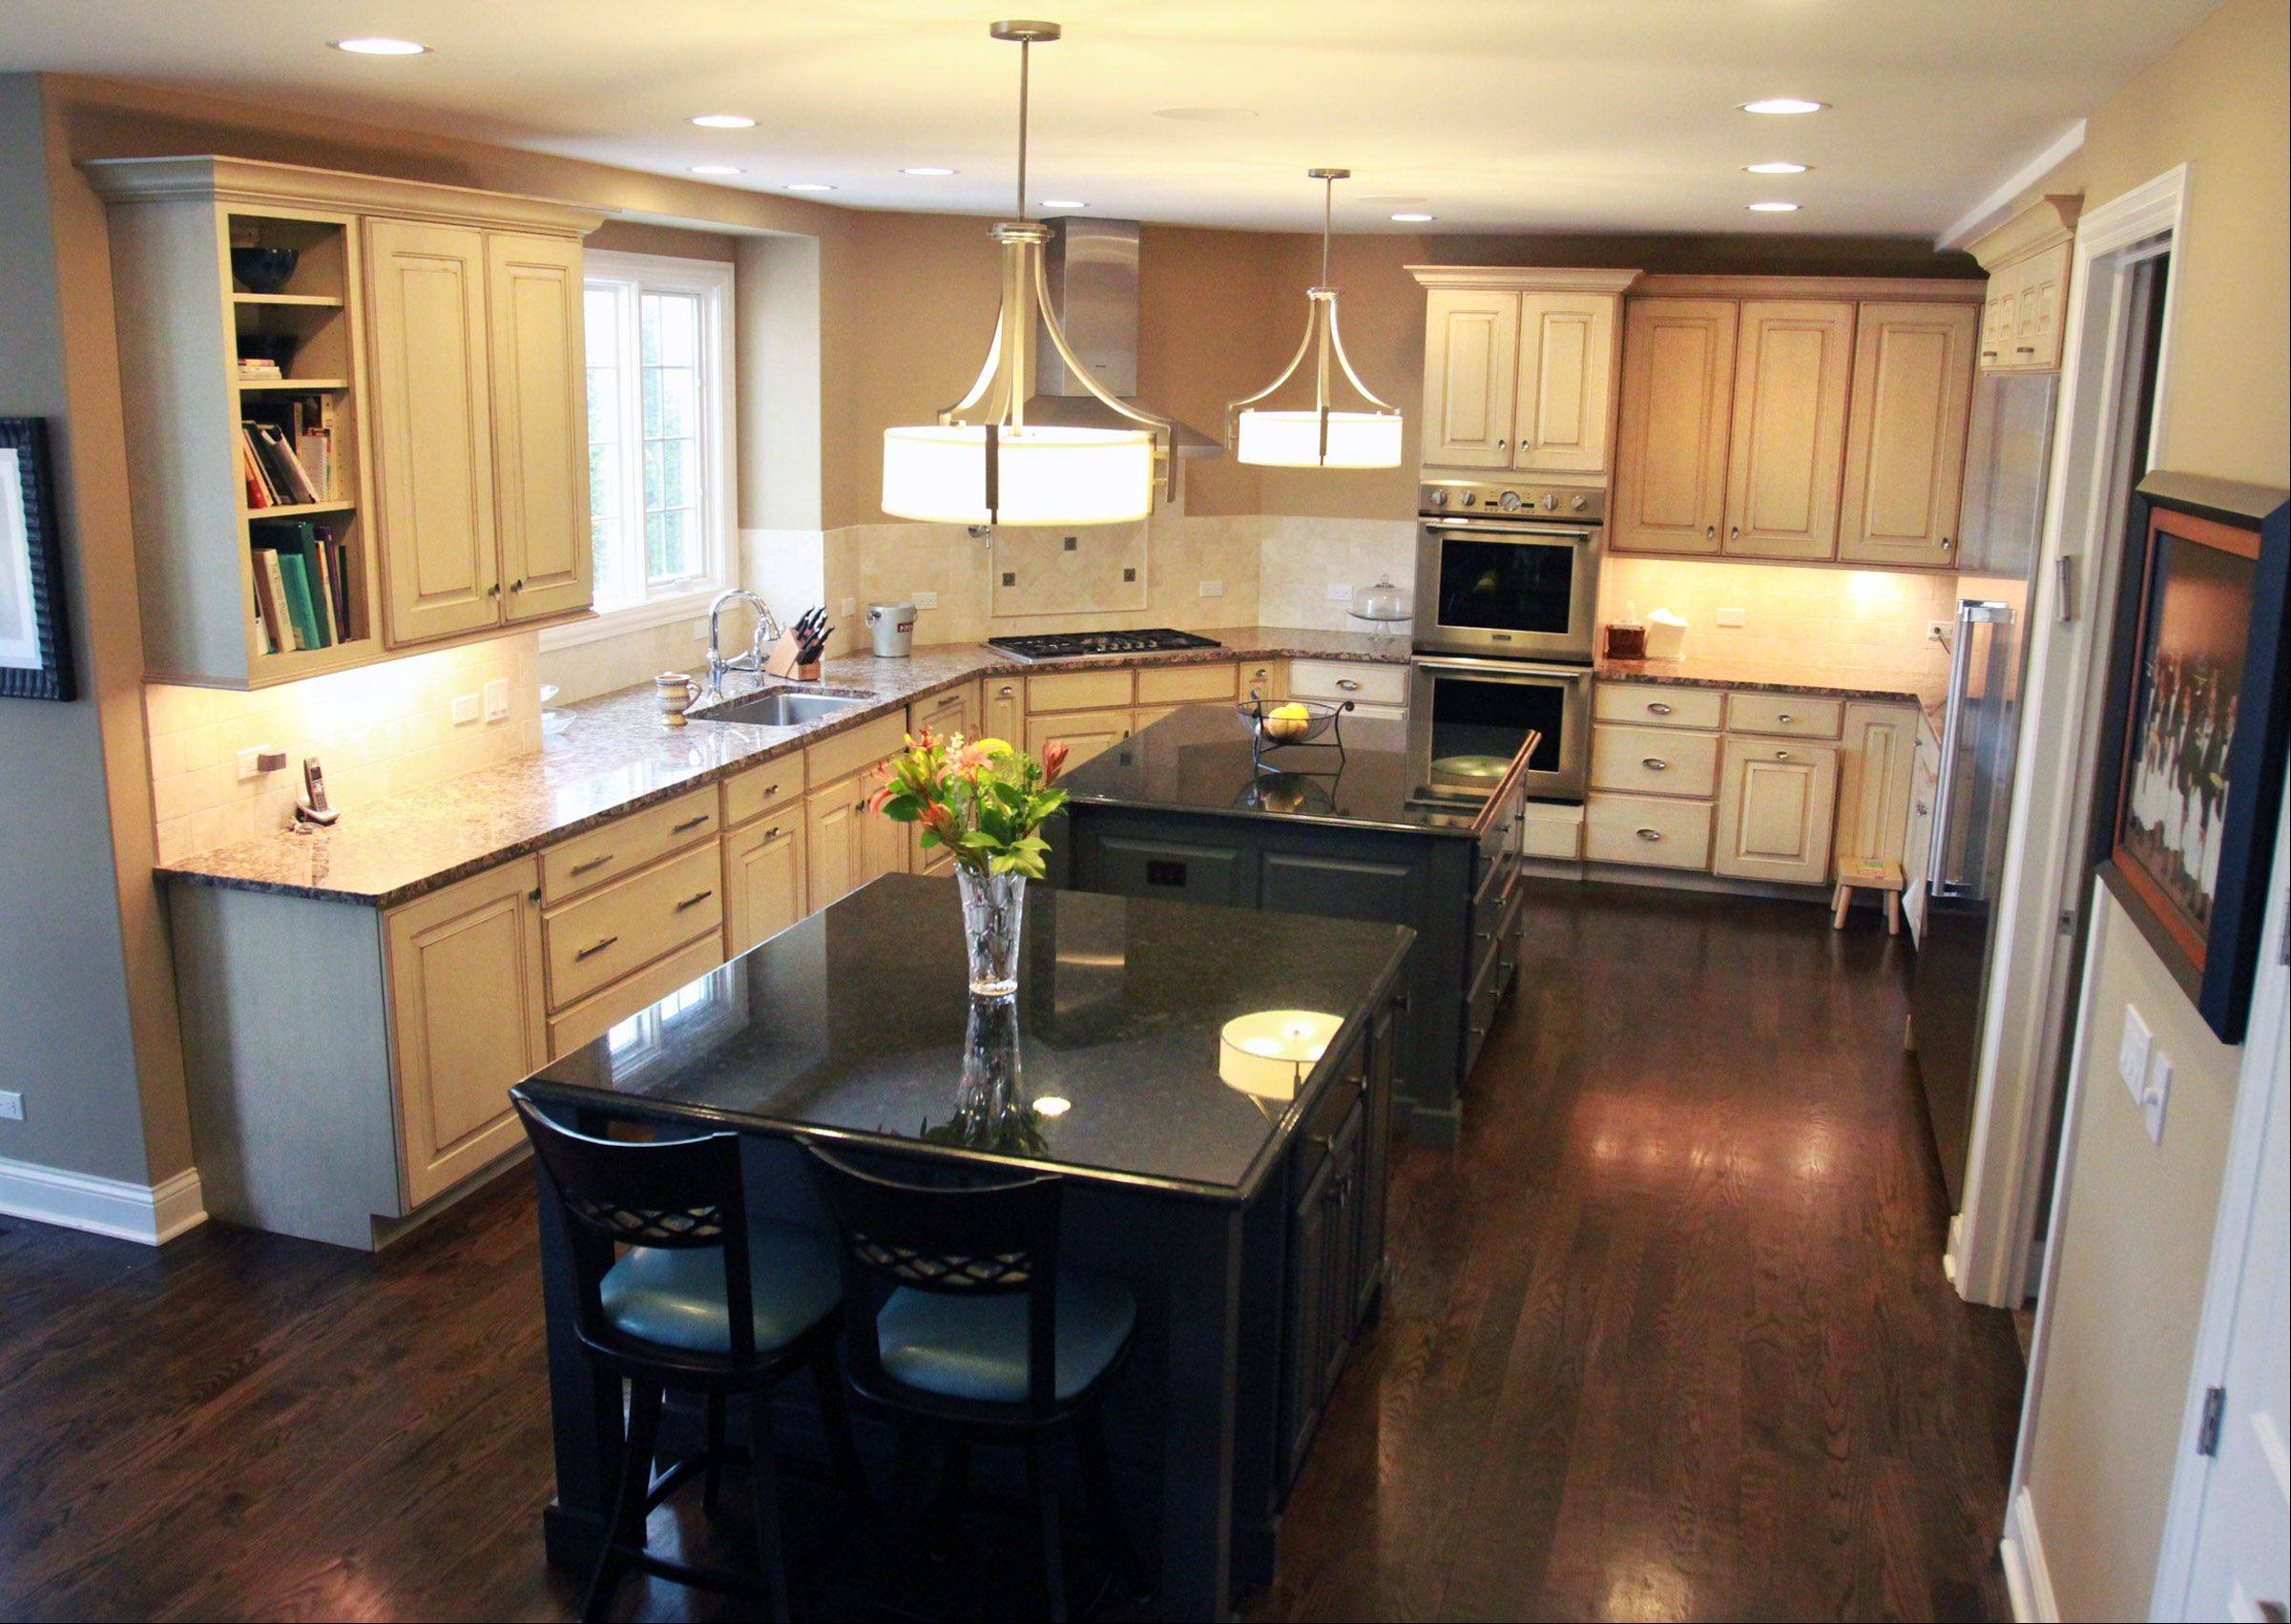 Robbie Fretzin hired architect David Wytmar, partner in Groundwork Ltd. of Buffalo Grove, to build her kosher kitchen, which includes two islands and an abundance of cabinet space that help the family keep meat and dairy separated, as well as other requirements of the family's Jewish faith.